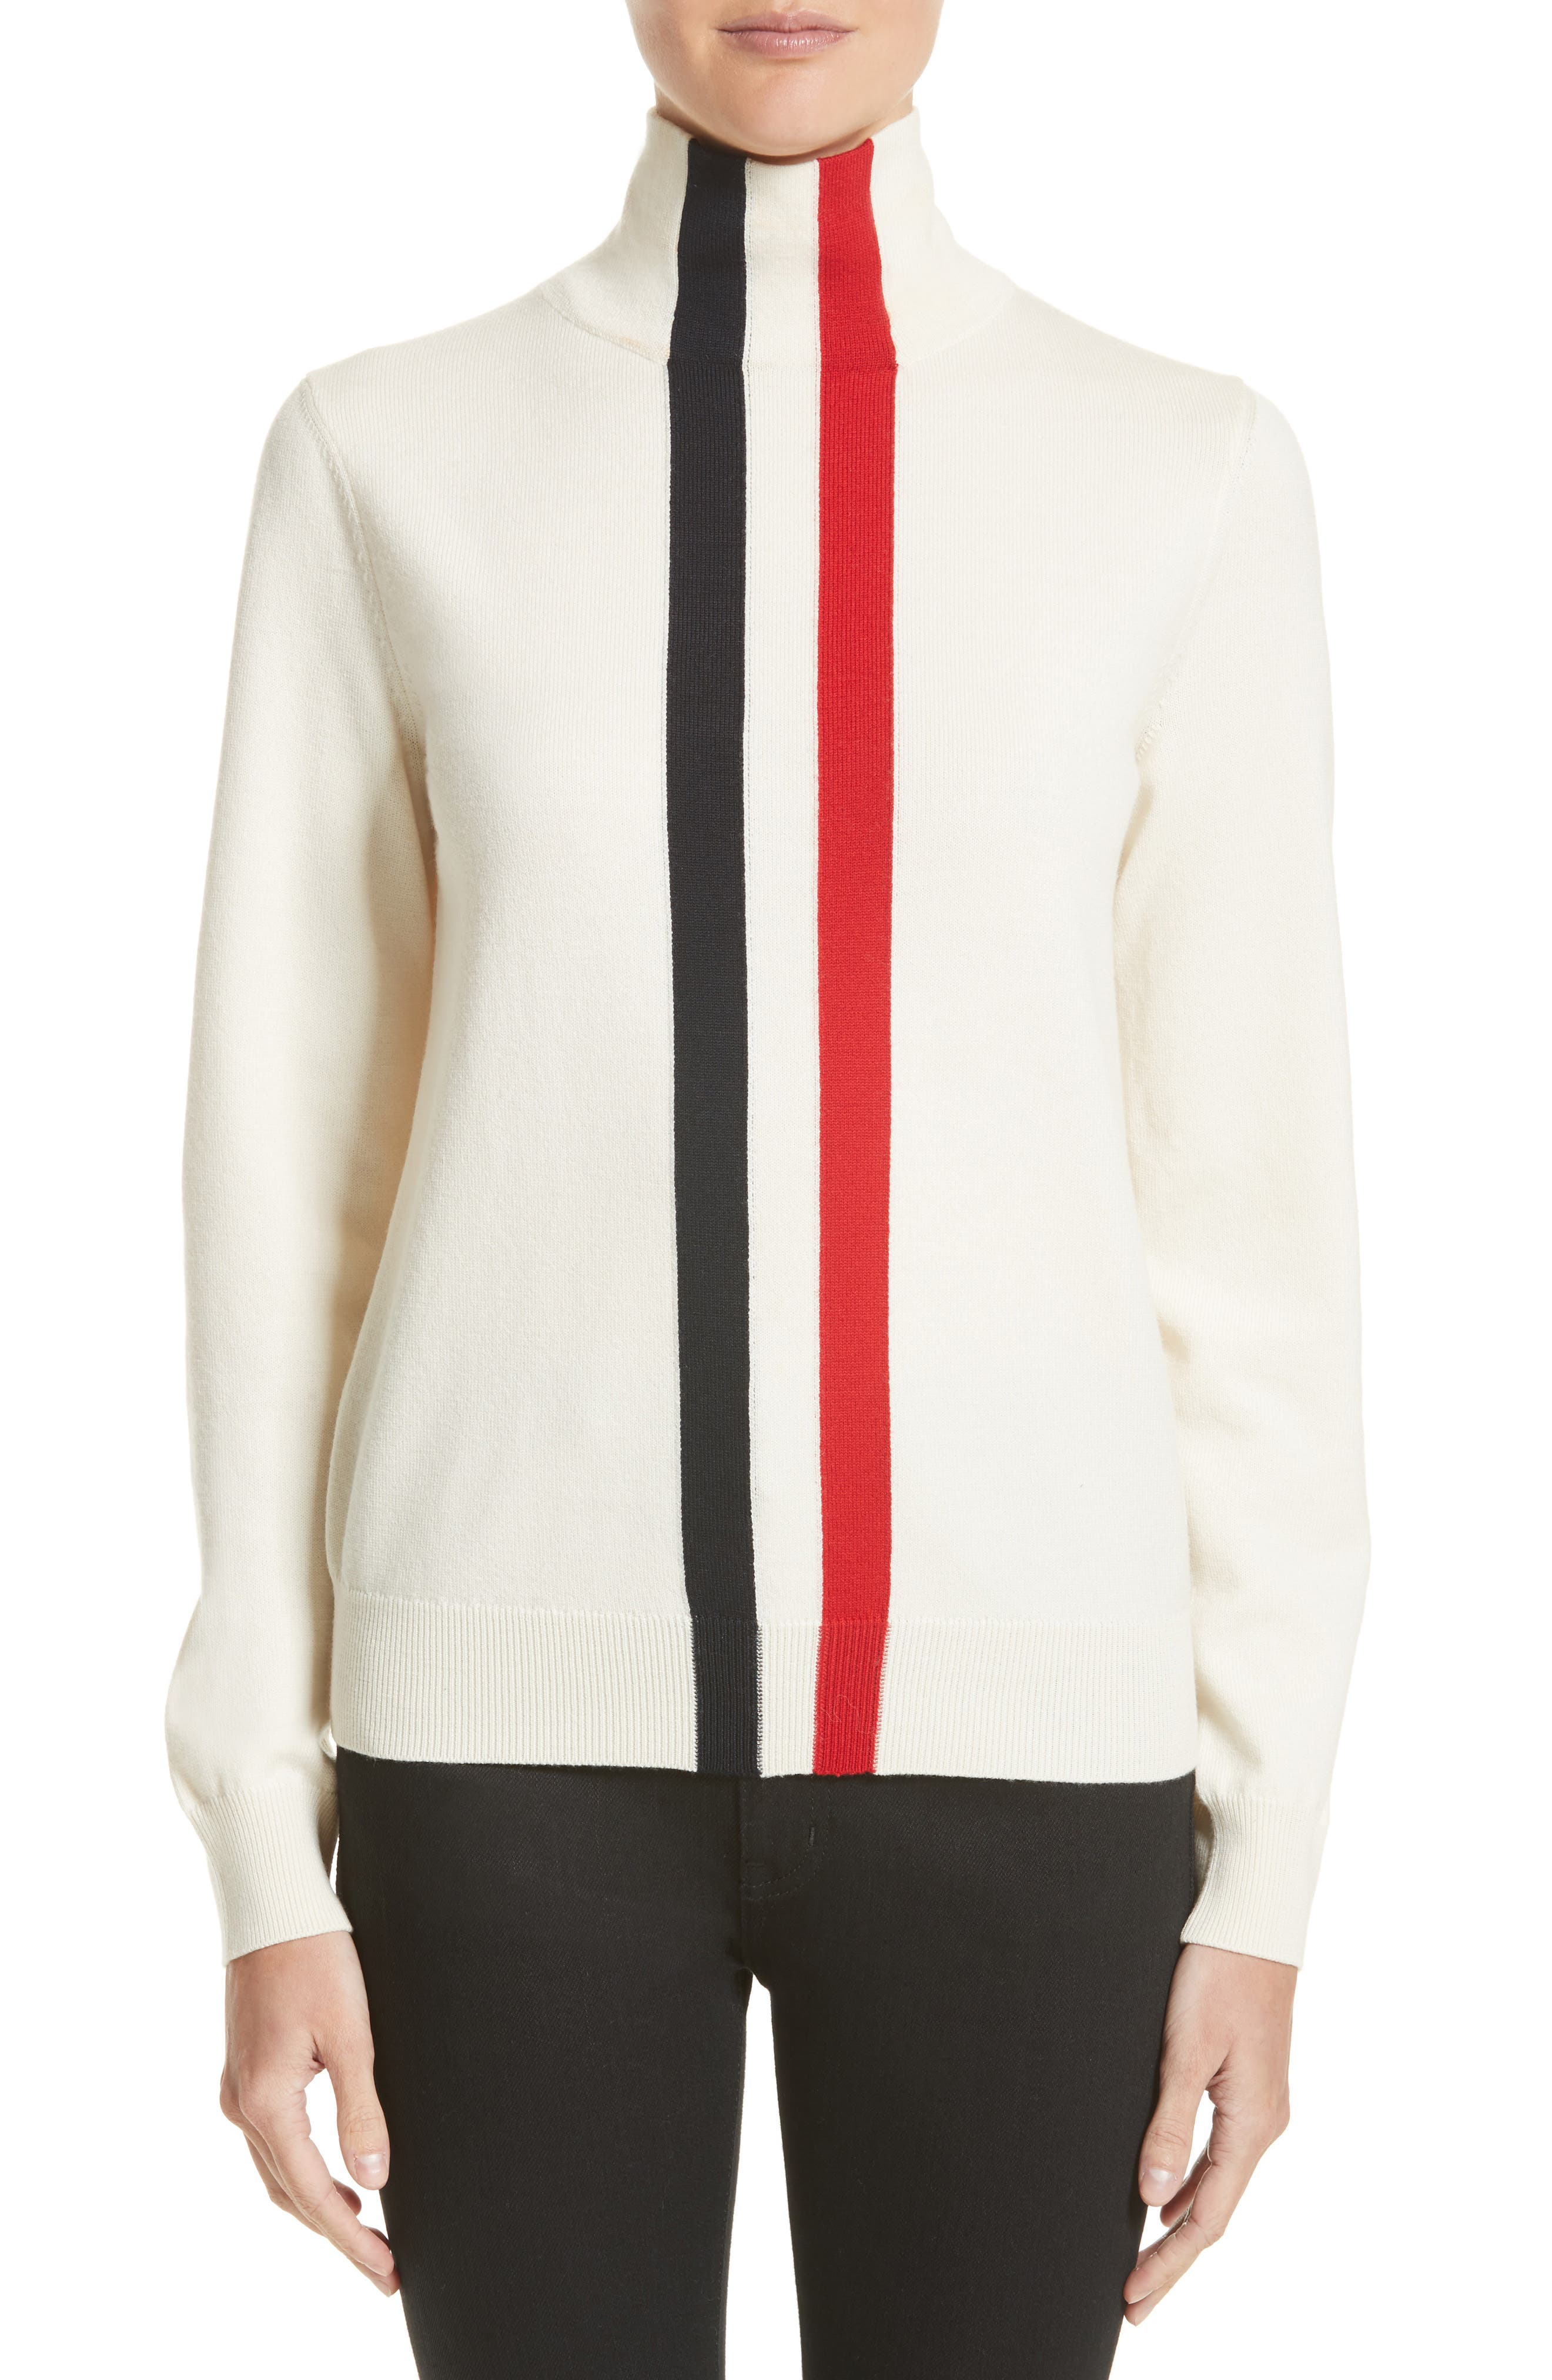 Ciclista Tricot Knit Sweater,                         Main,                         color, White